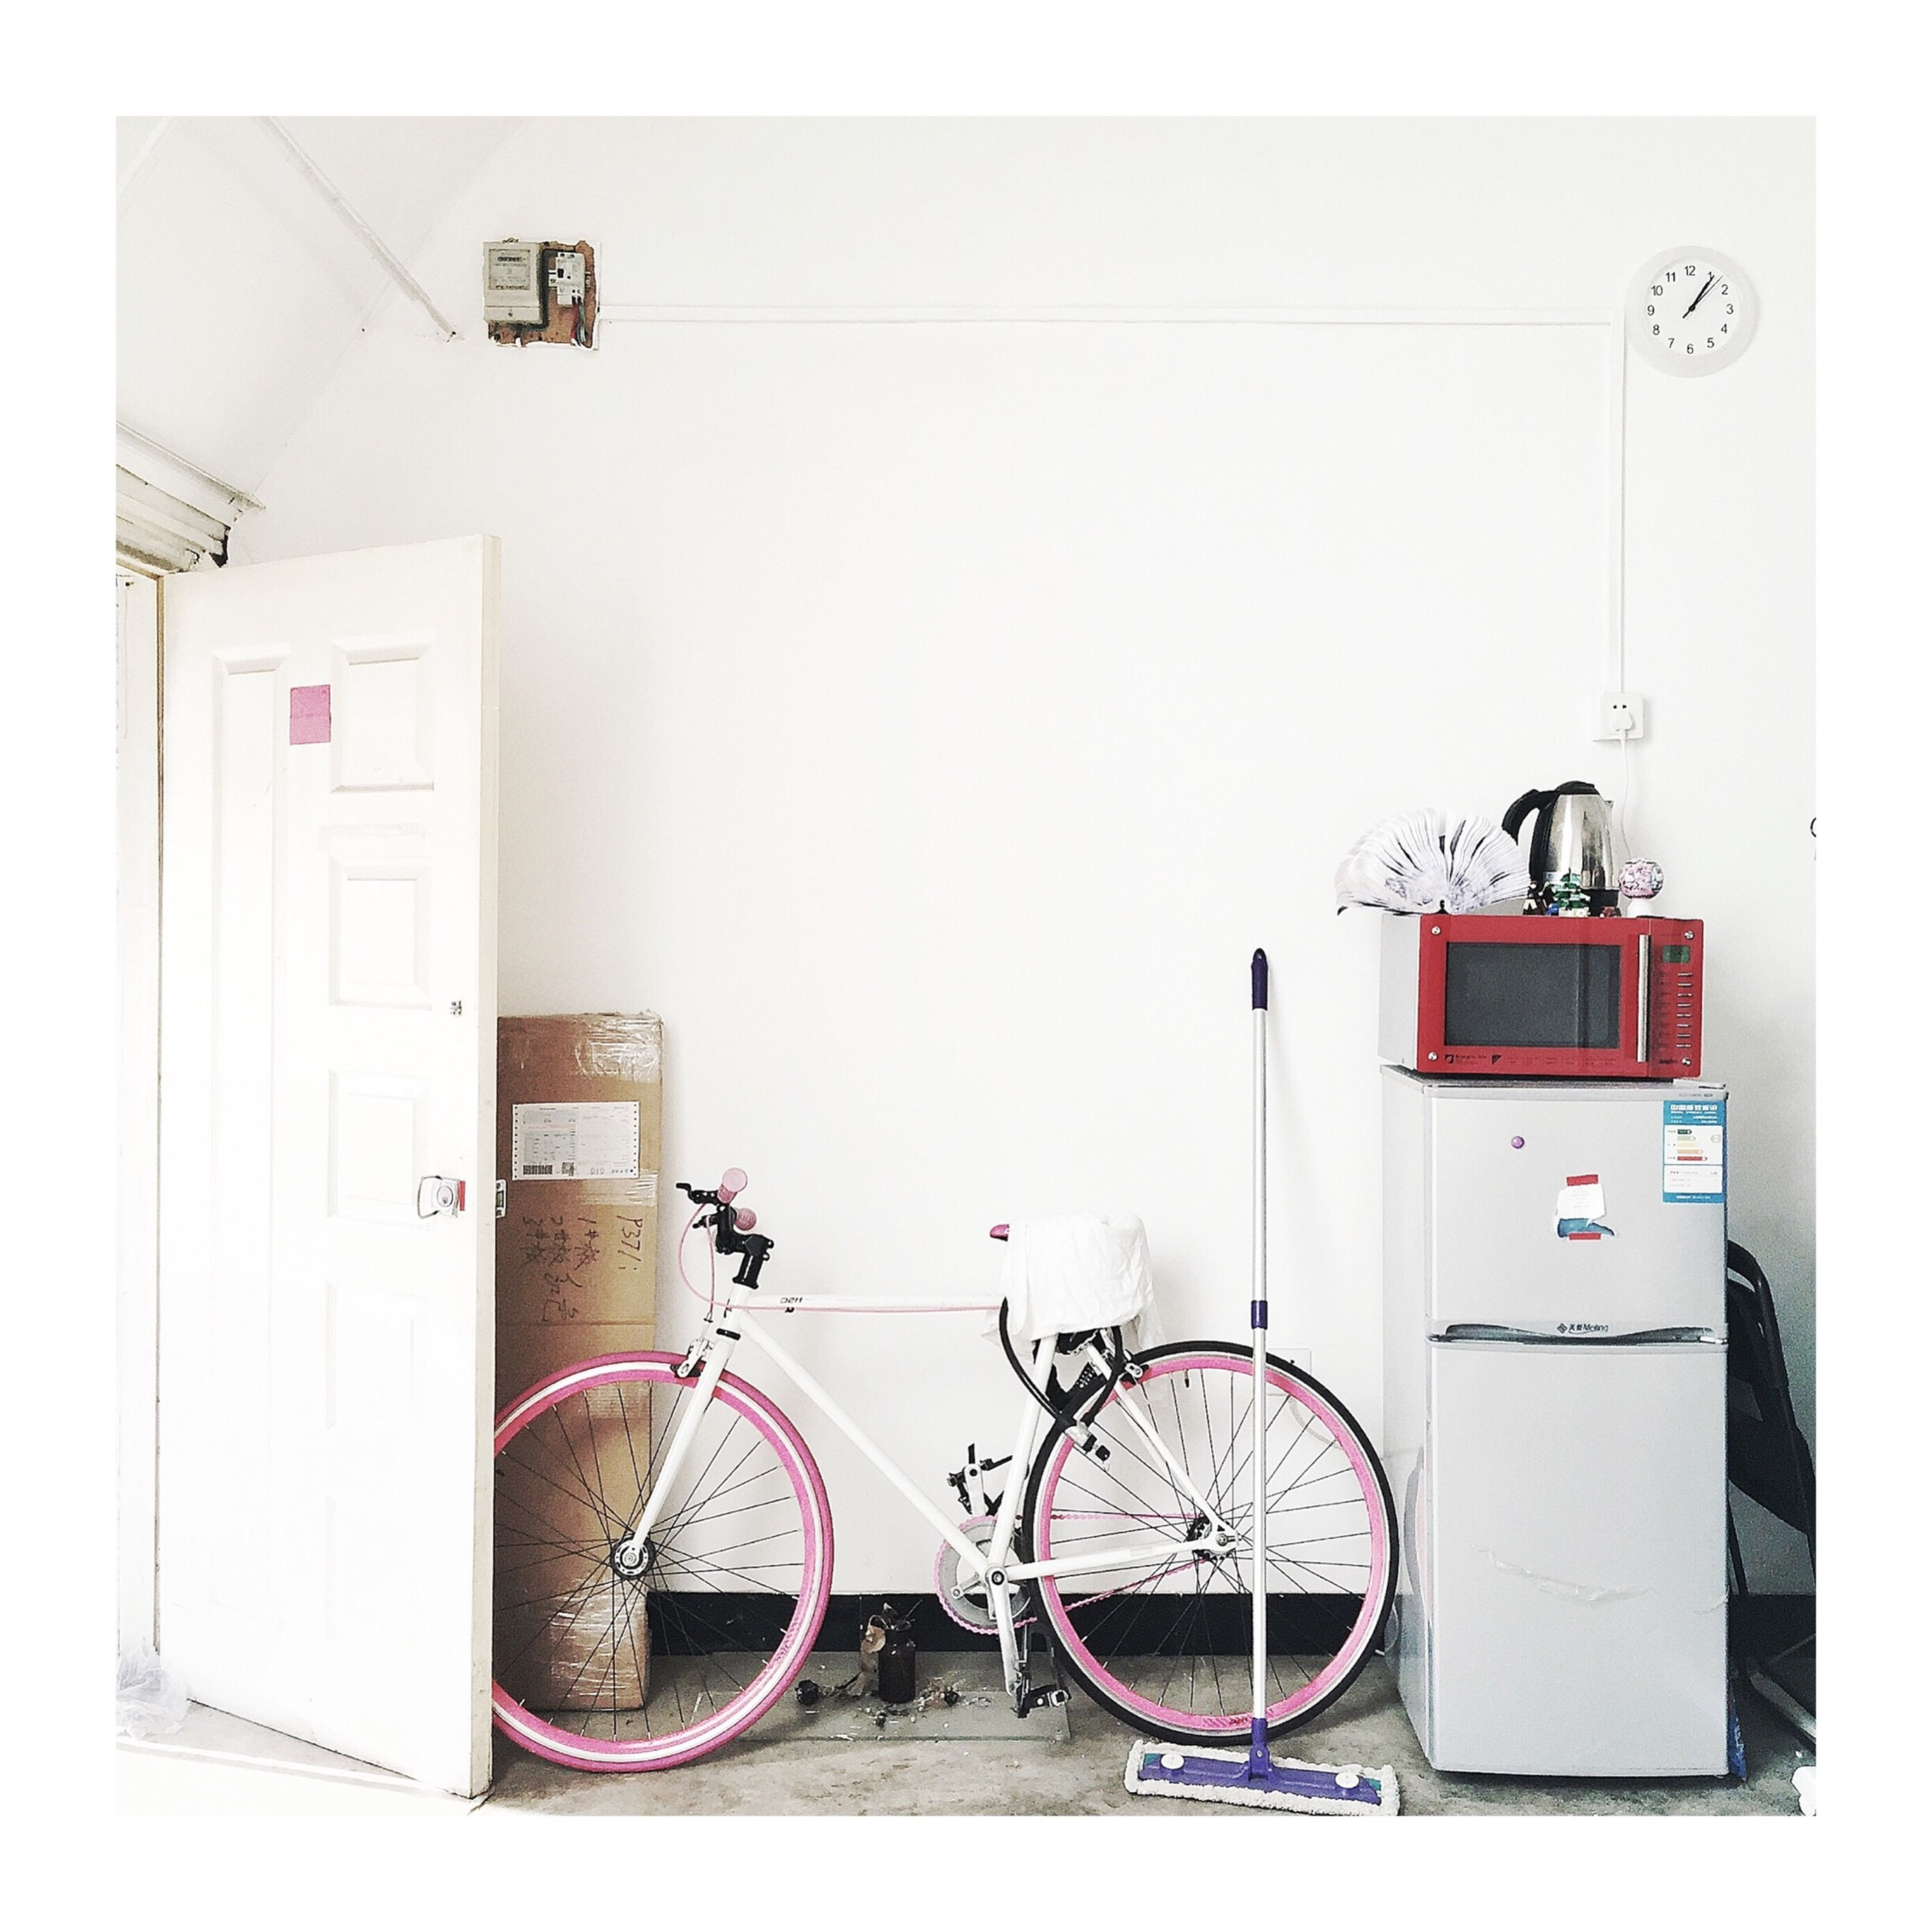 indoors, built structure, architecture, wall - building feature, wall, communication, transfer print, transportation, technology, auto post production filter, door, no people, day, white color, connection, mode of transport, absence, stationary, bicycle, building exterior